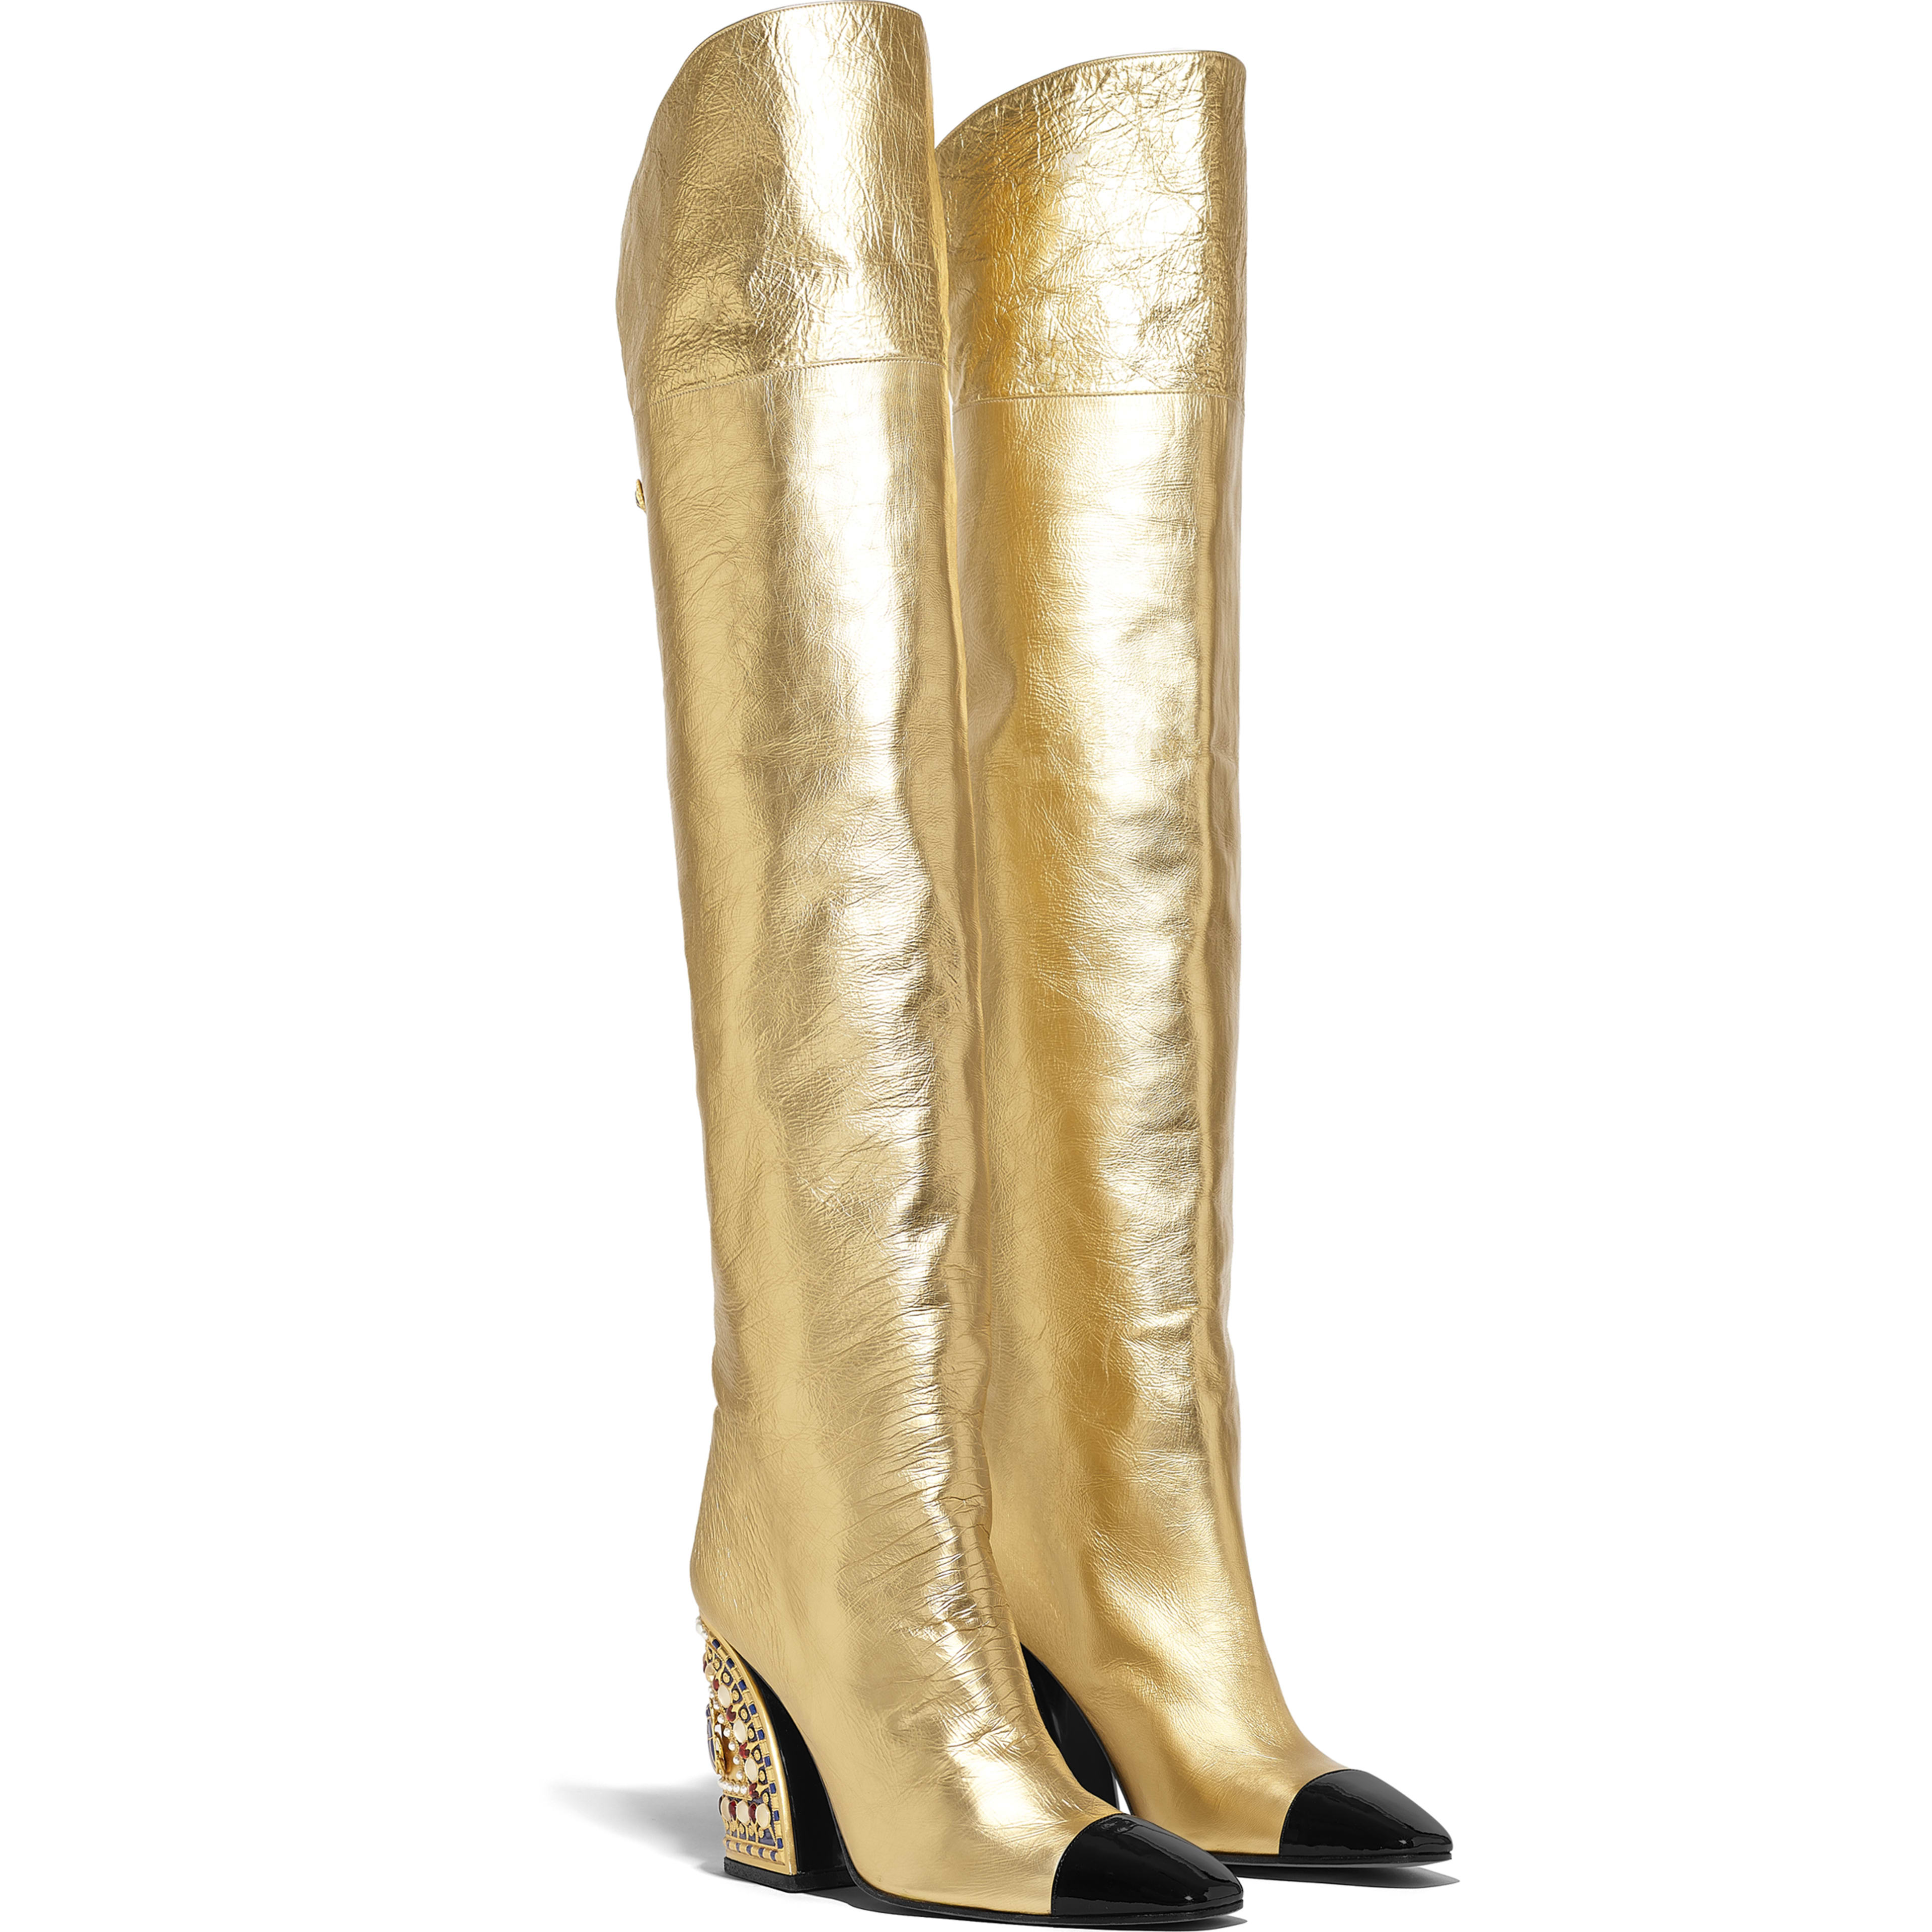 High Boots - Gold & Black - Laminated Lambskin & Patent Calfskin - Alternative view - see full sized version